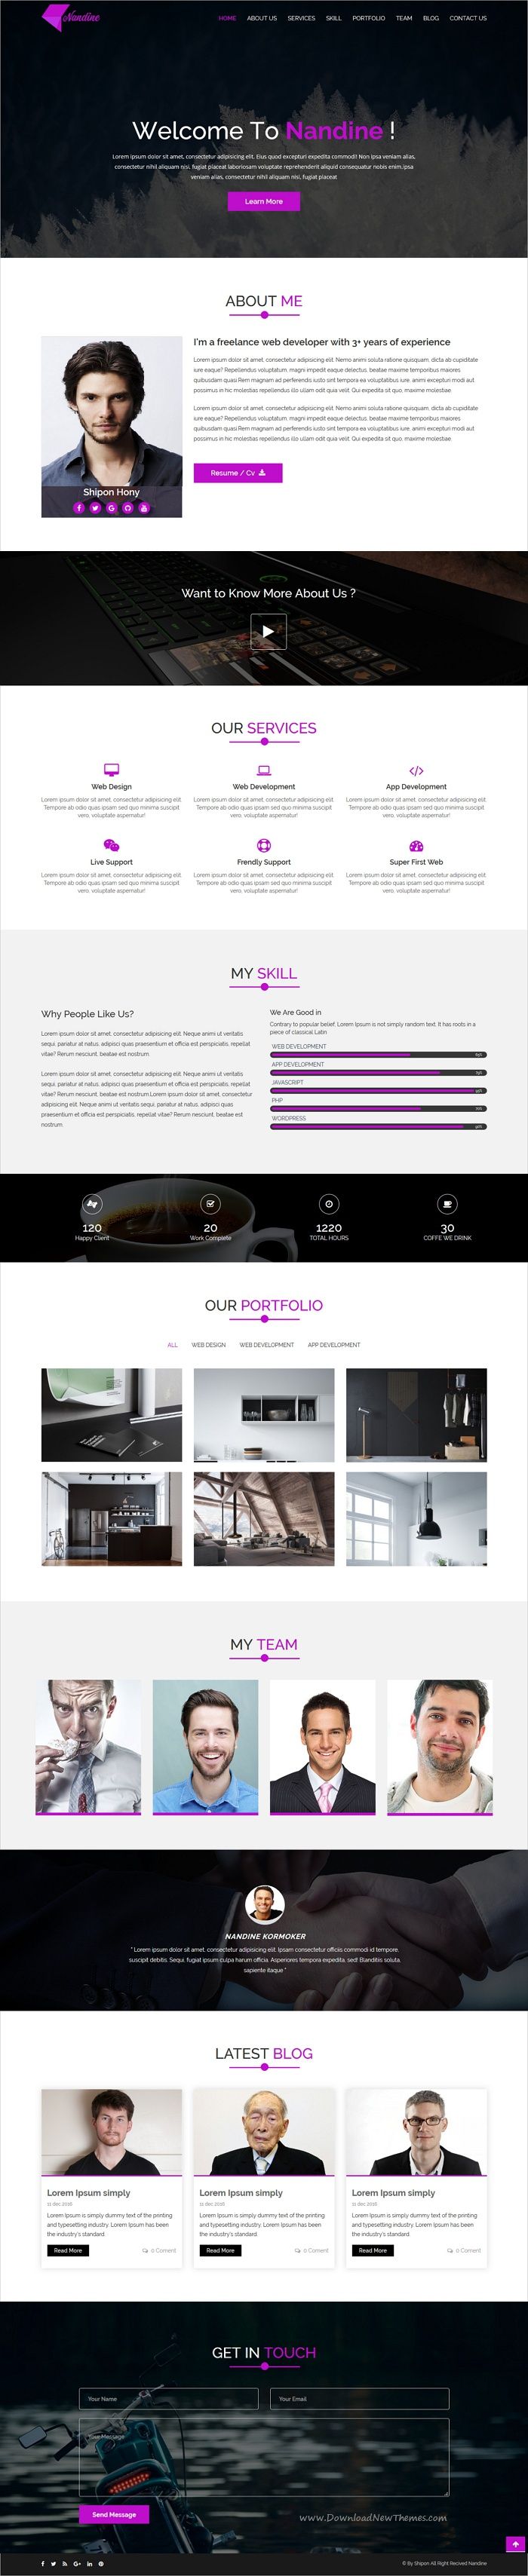 Nandine is a clean and professional design #HTML bootstrap template for #CV, resume and #portfolio showcase websites download now➩  https://themeforest.net/item/nandine-responsive-portfolio-html5-template/19414182?ref=Datasata